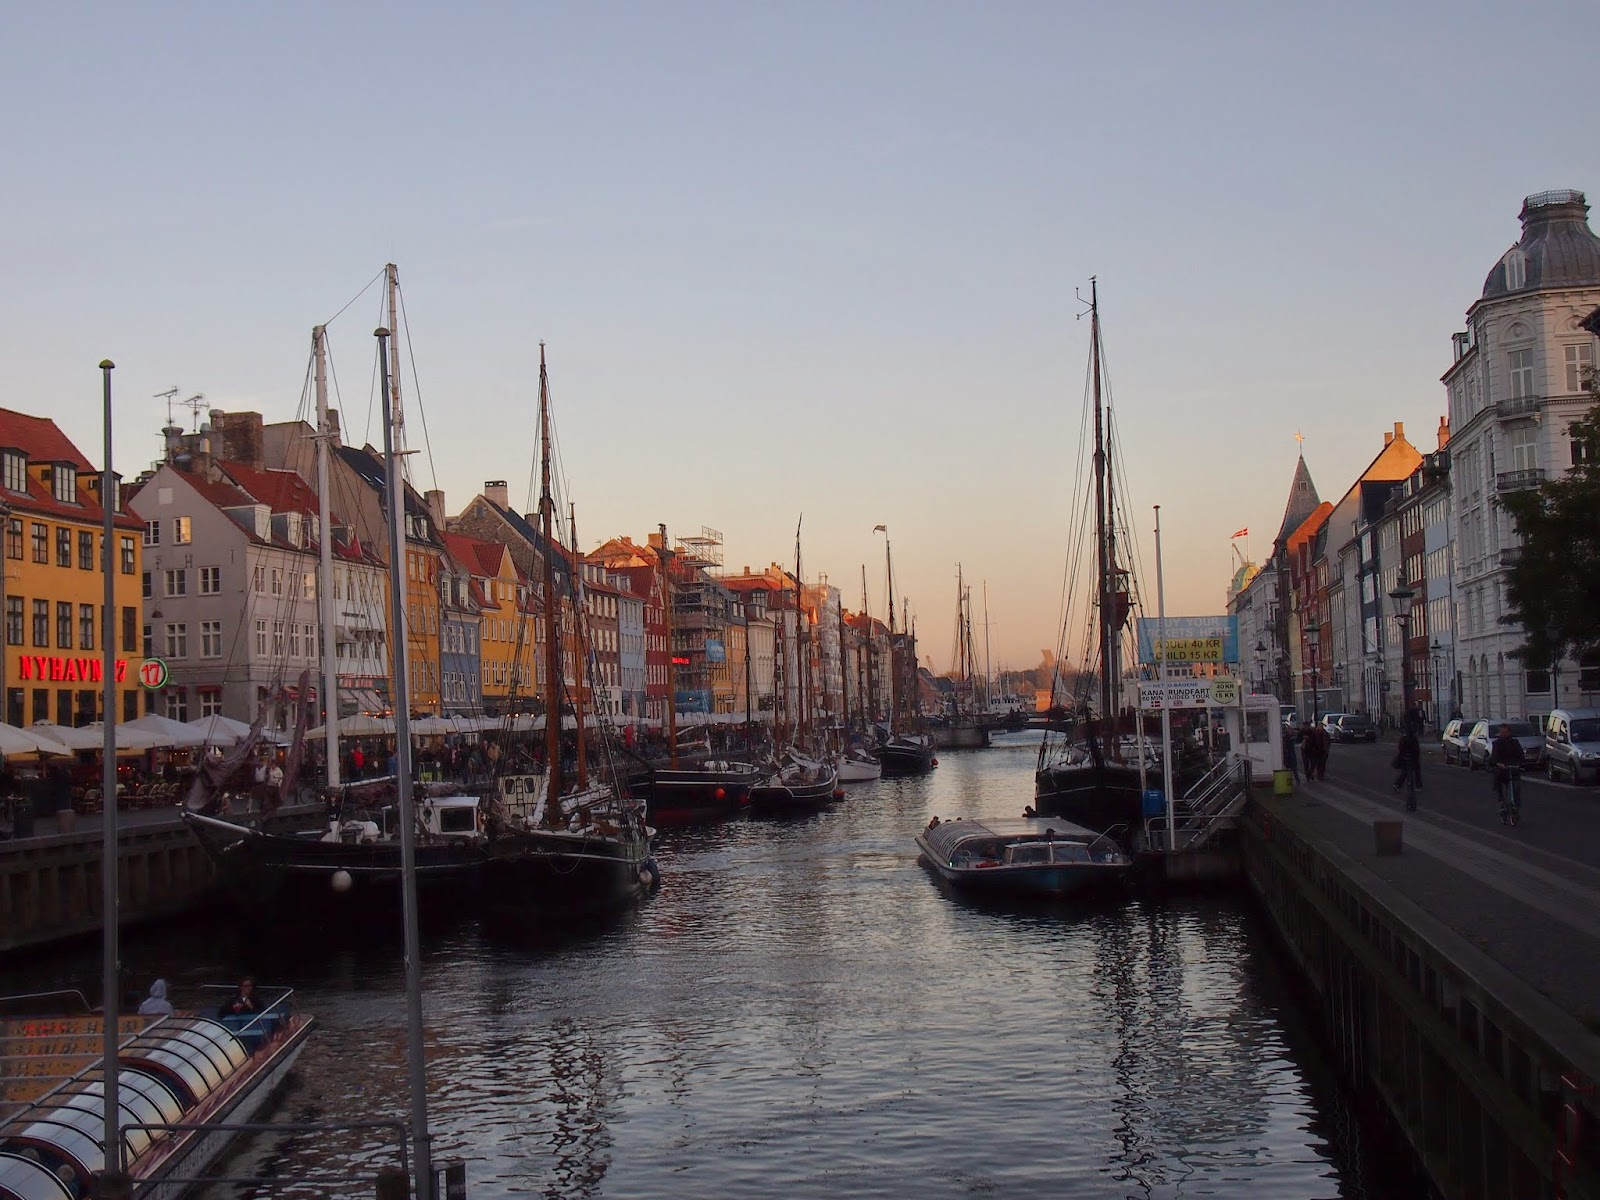 Nyhavn and the canals